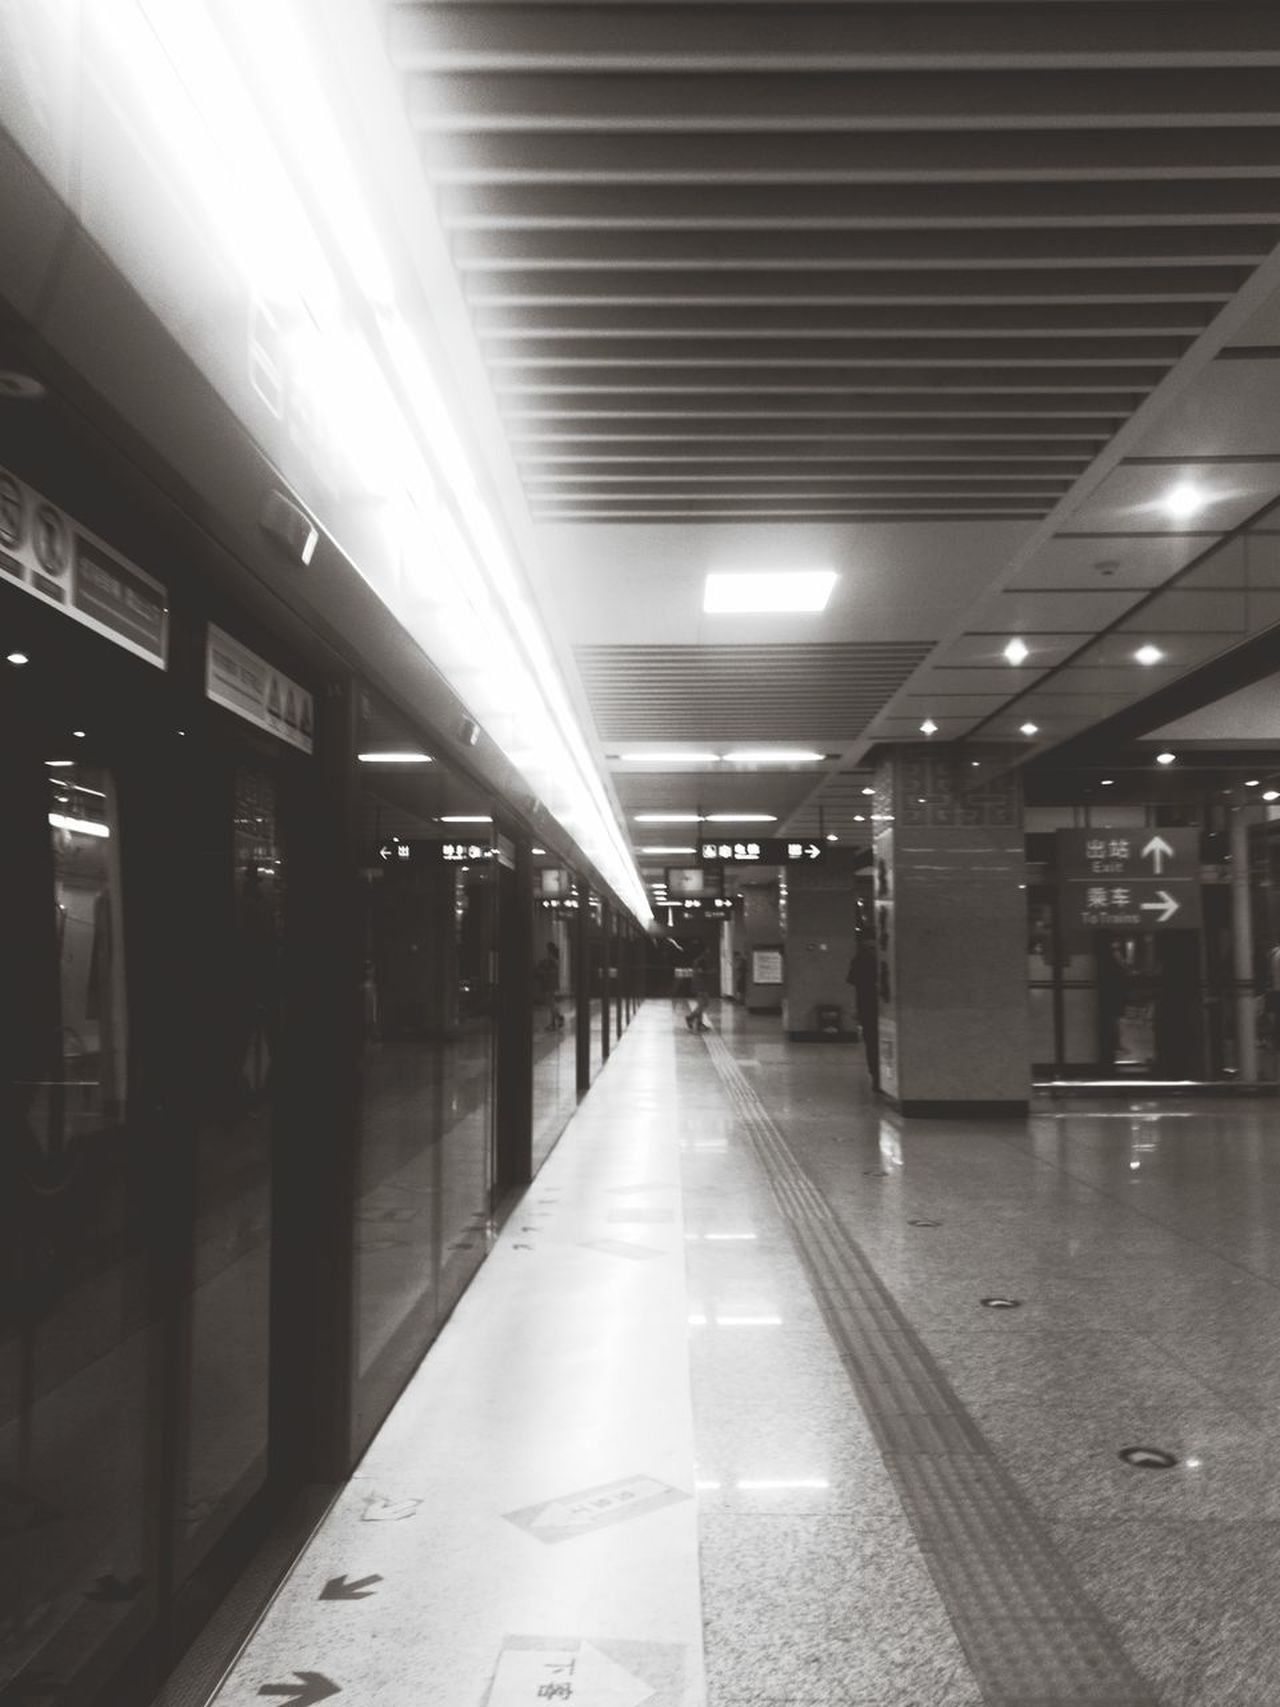 everyday 3 hours on subway this holiday City White And Black City Lifestyles Day